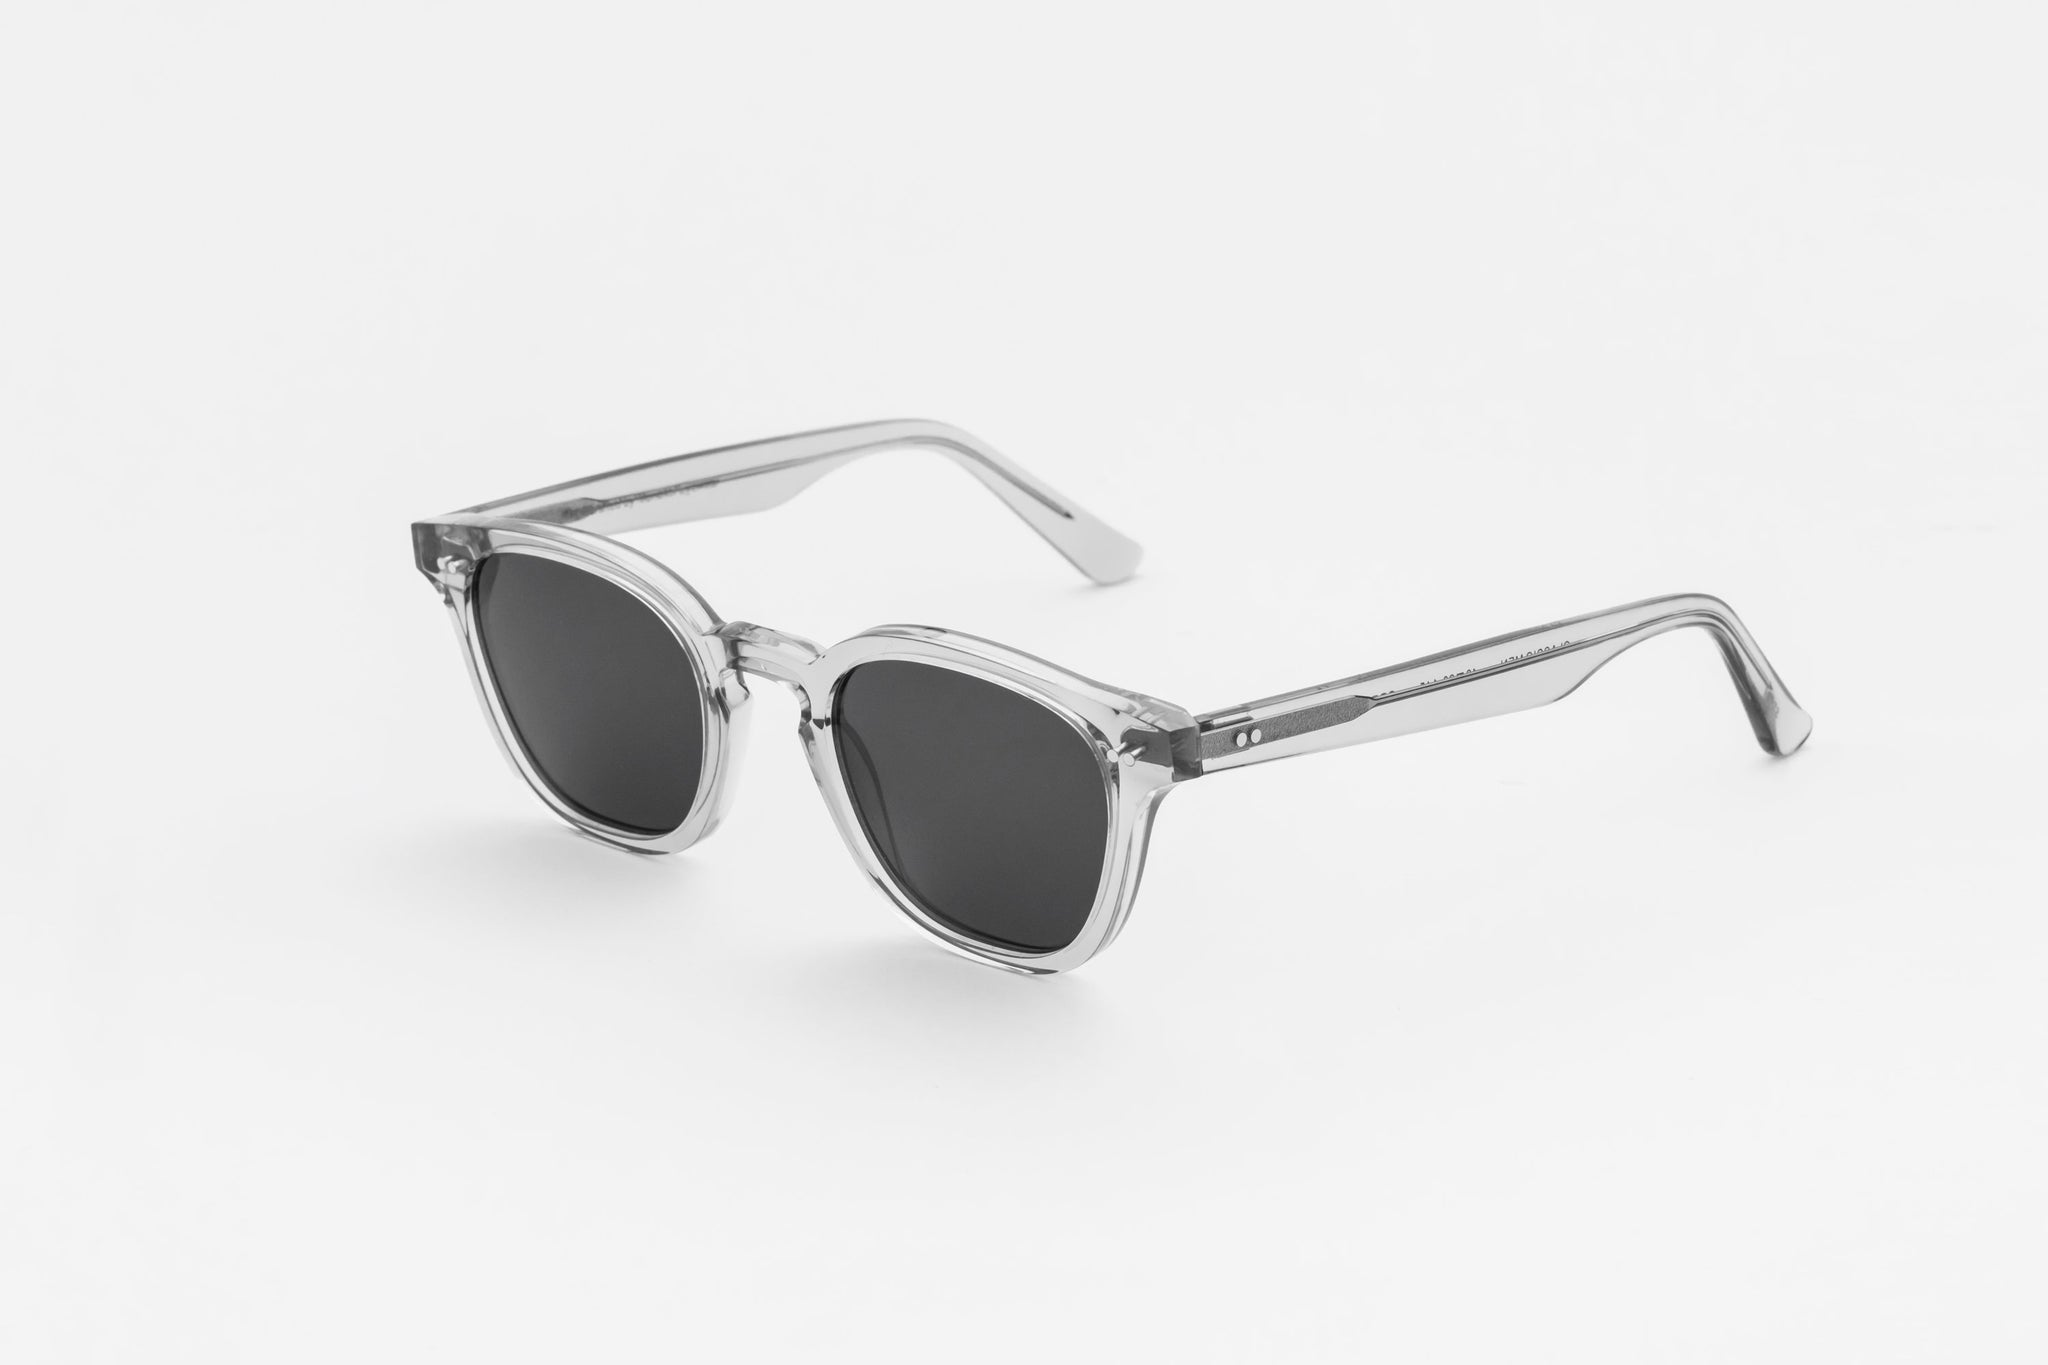 monokel eyewear sunglasses river grey / grey solid lens